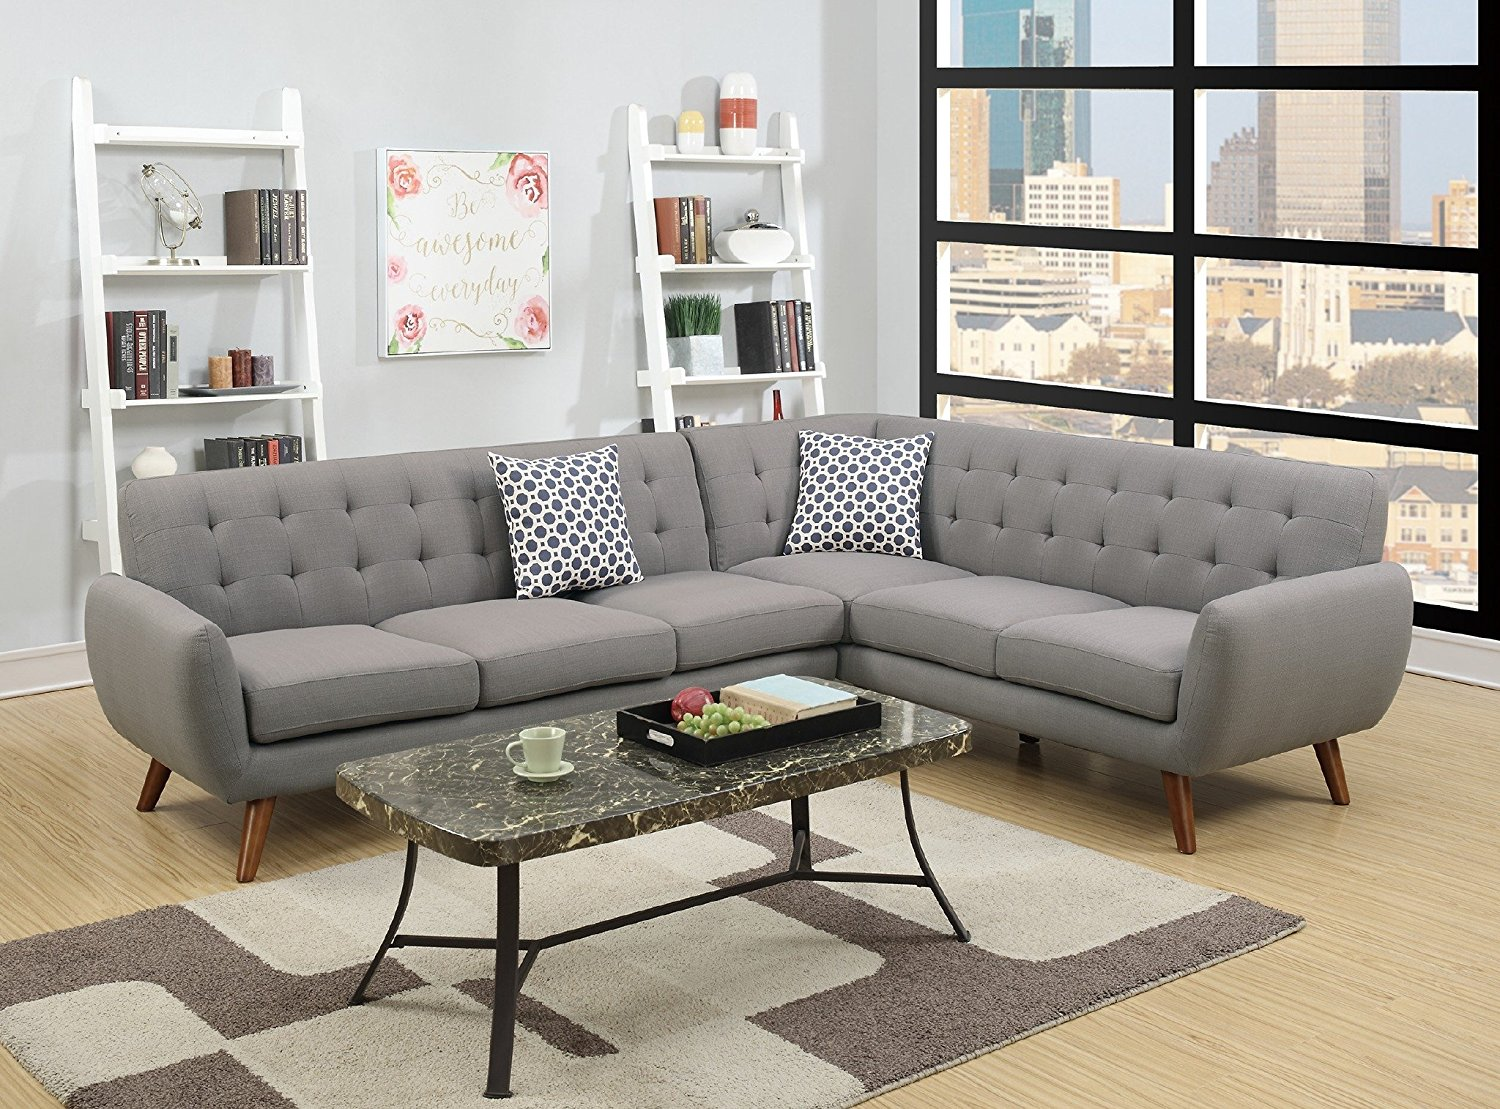 2Pcs Modern Grey Polyfiber Linen-Like Fabric Sectional Sofa Set with Clean Lines and Curves and Accent Tufted Back... by